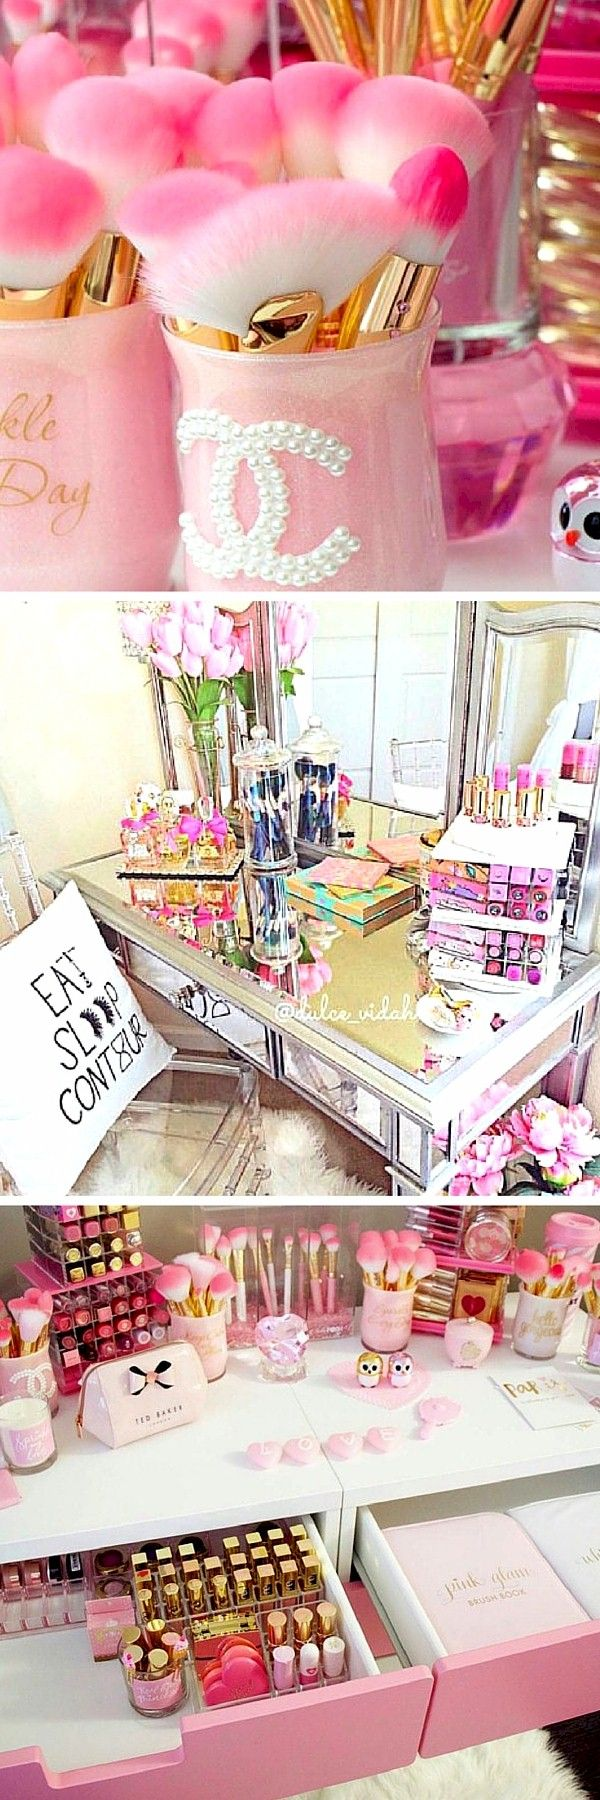 Love the Pink Vanity (Third Picture Shown).